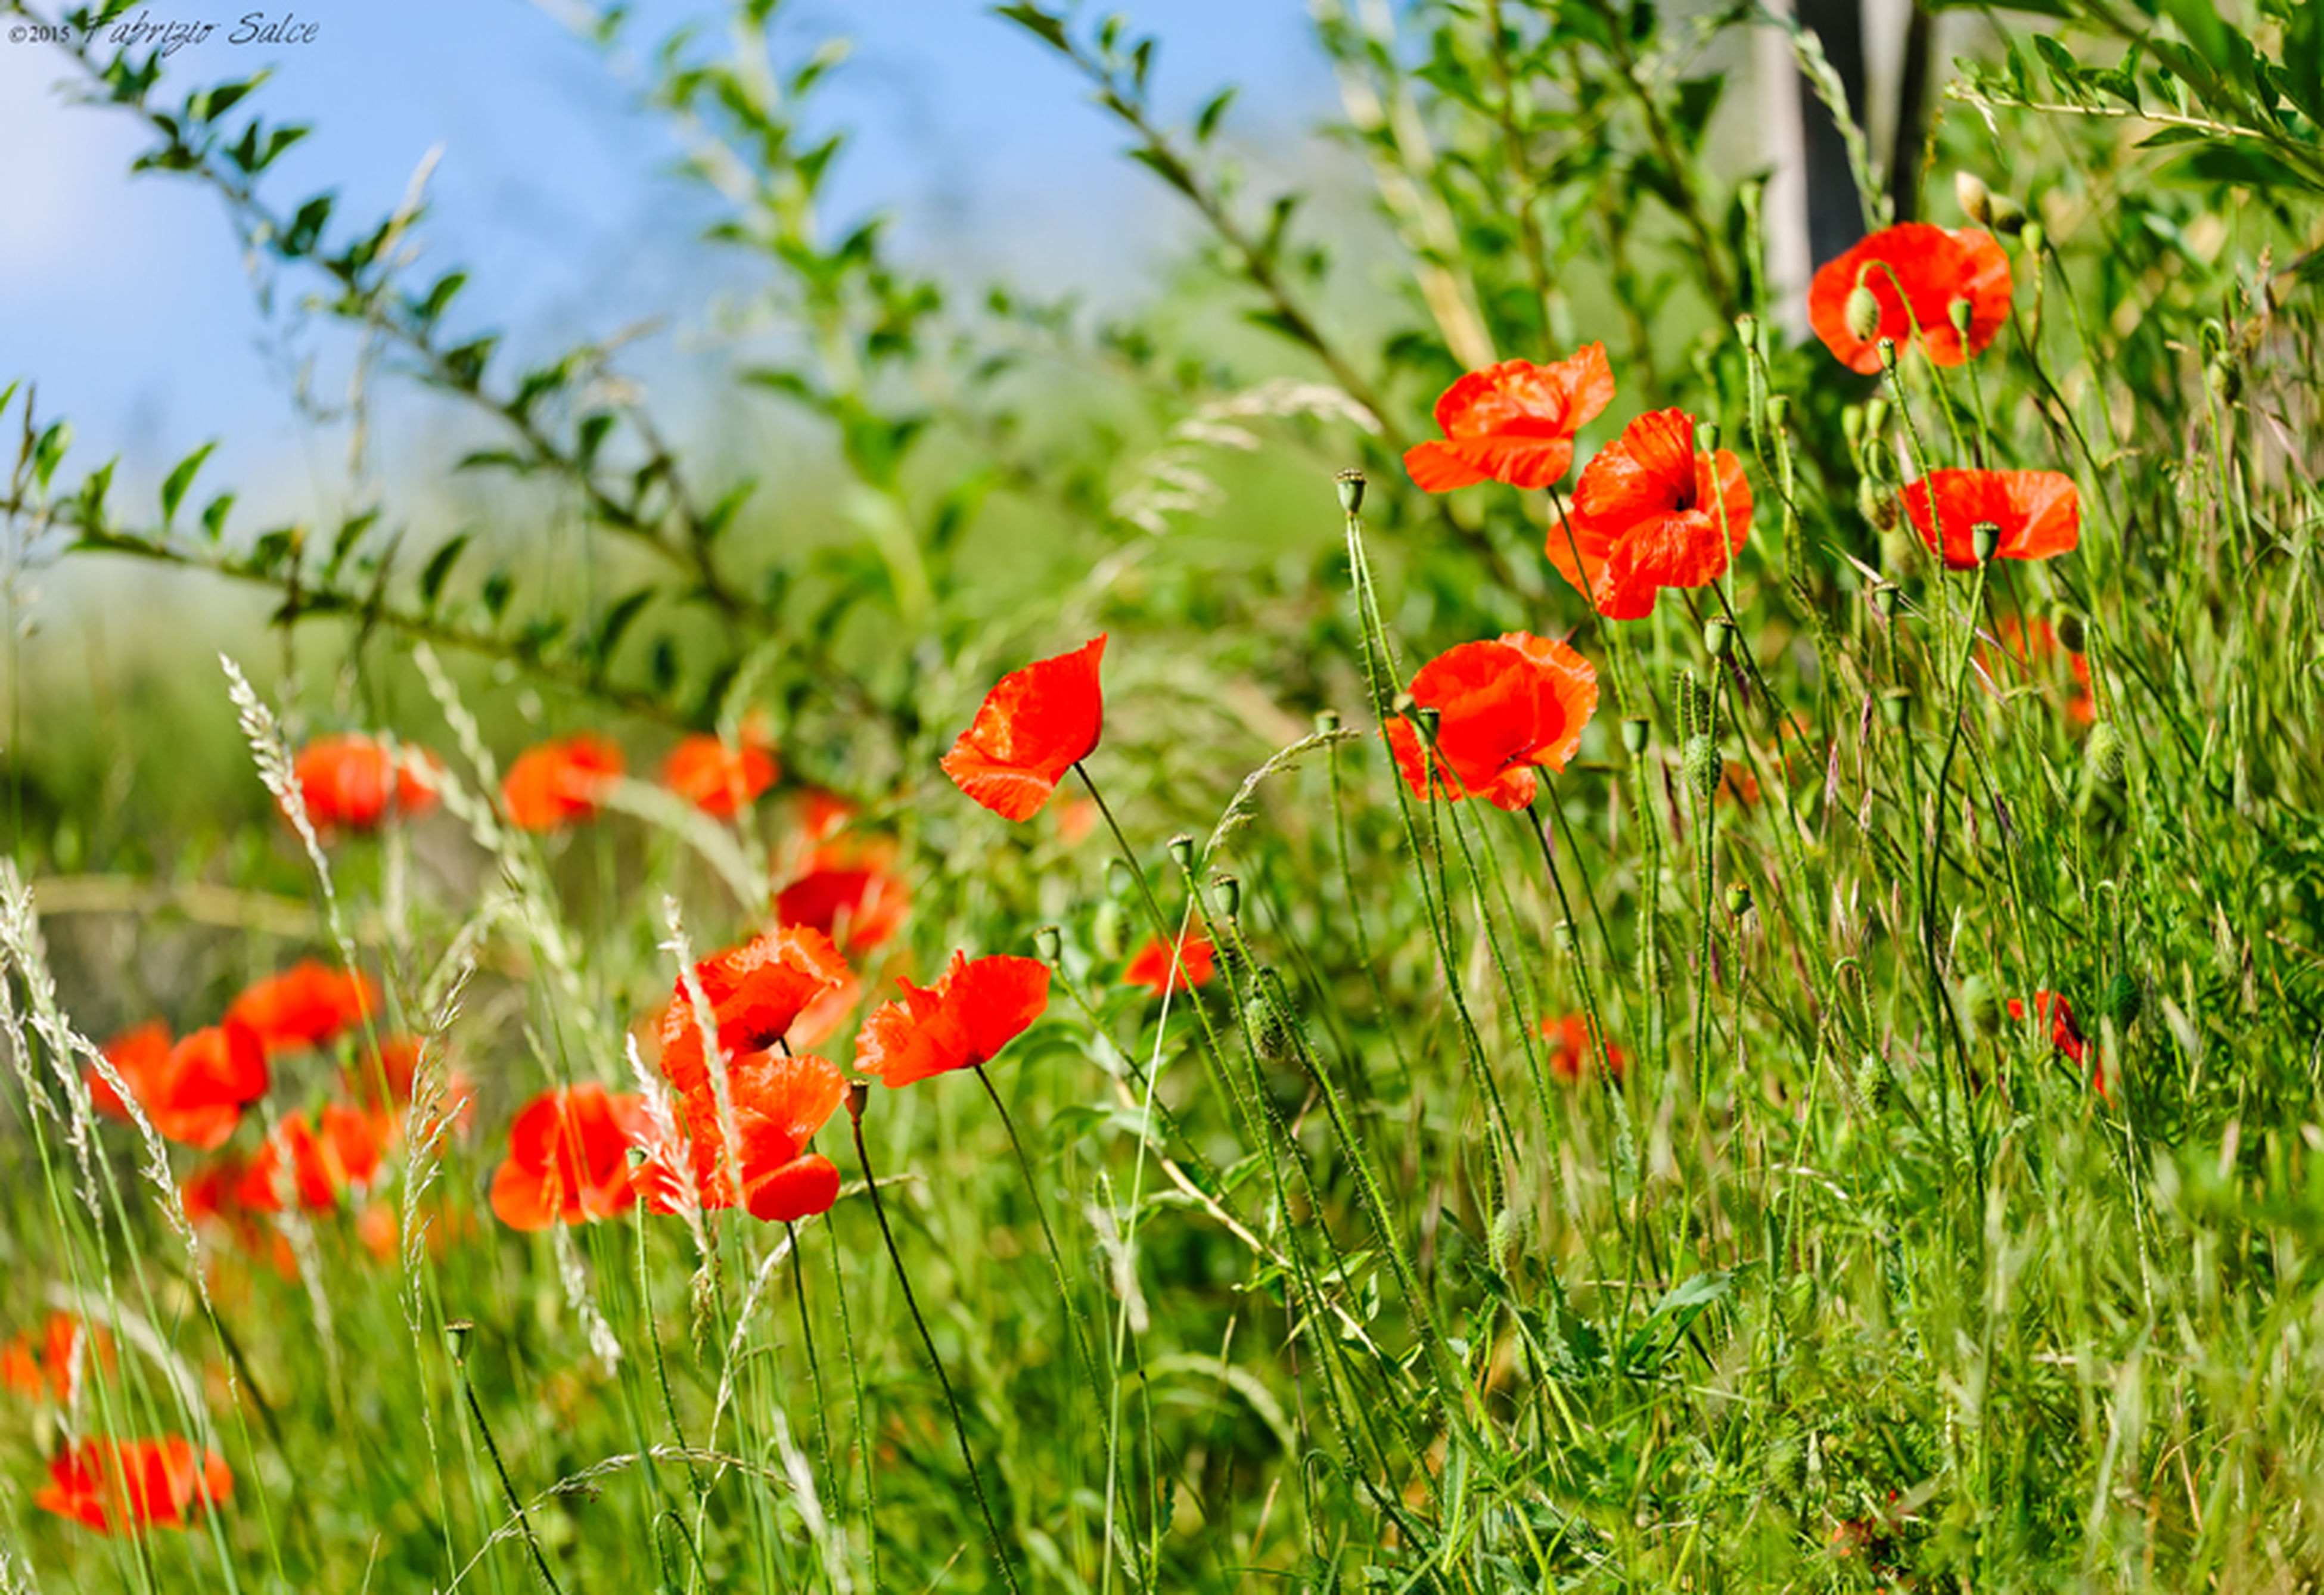 flower, red, growth, fragility, freshness, poppy, beauty in nature, petal, in bloom, field, nature, springtime, vibrant color, selective focus, wildflower, plant, blossom, flower head, focus on foreground, day, botany, uncultivated, scenics, blooming, outdoors, tranquility, green color, no people, non-urban scene